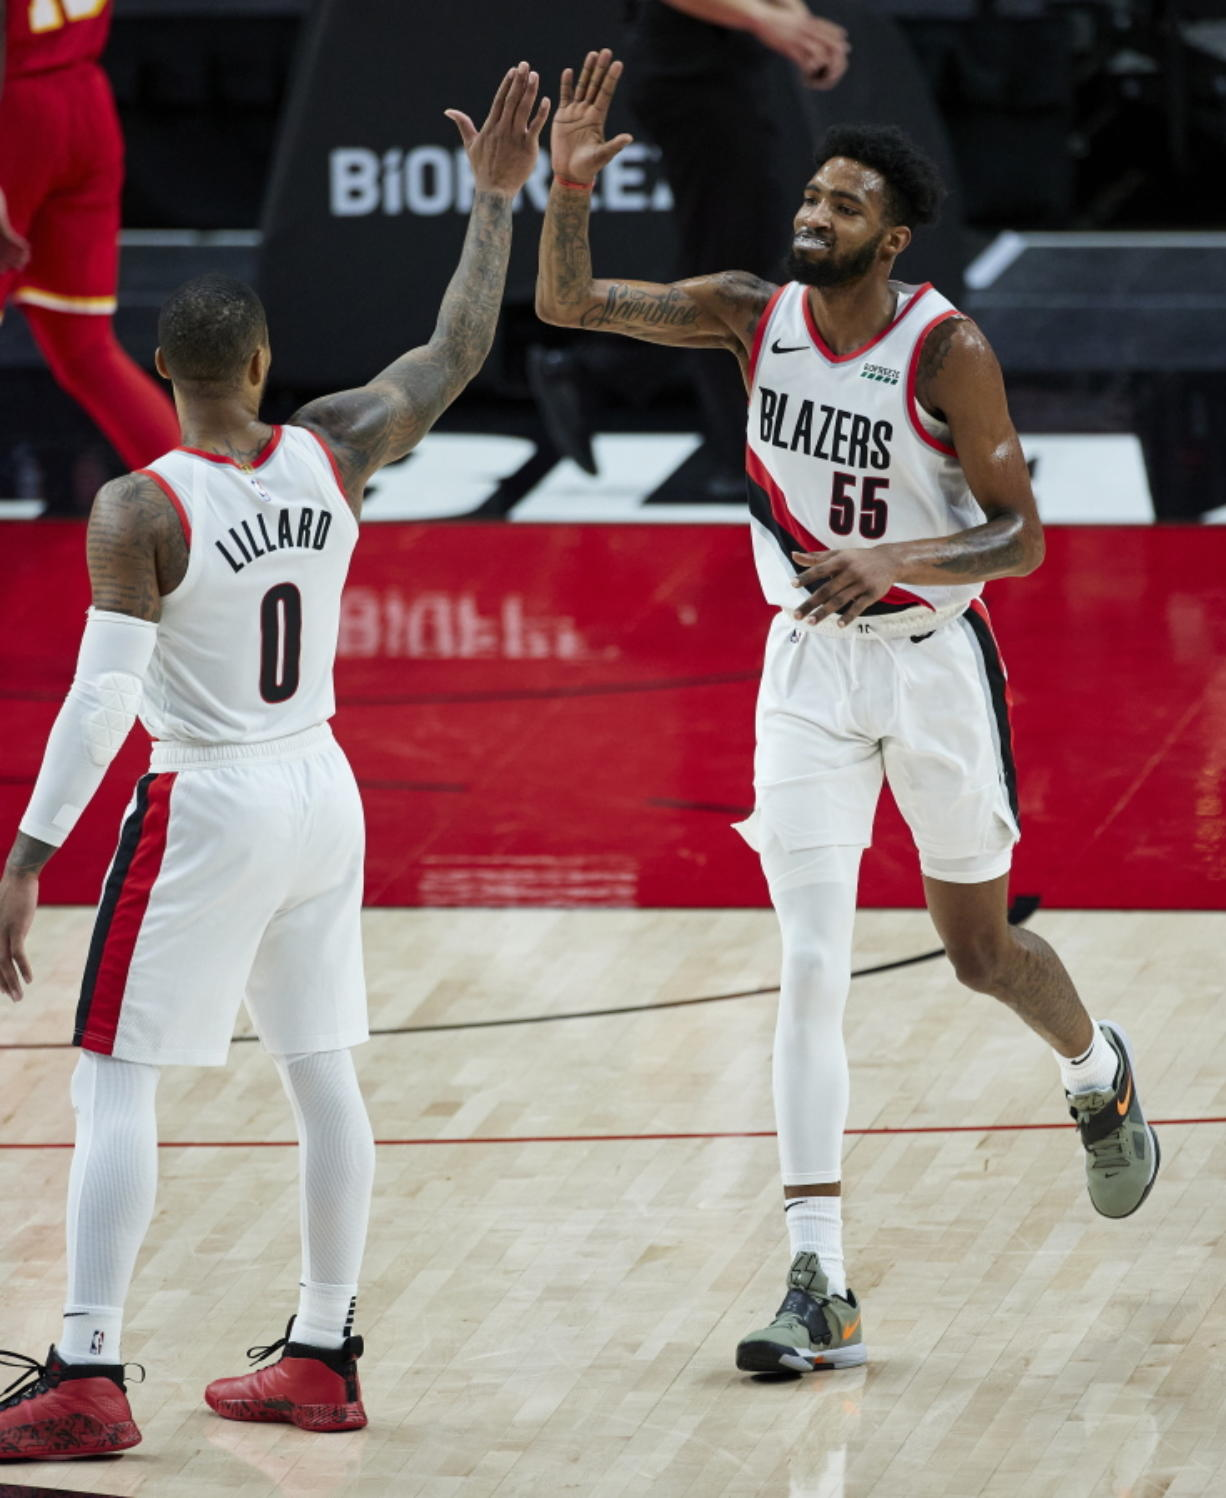 Portland Trail Blazers forward Derrick Jones Jr., right, high-fives guard Damian Lillard after Jones scored against the Atlanta Hawks during the second half of an NBA basketball game in Portland, Ore., Saturday, Jan. 16, 2021.